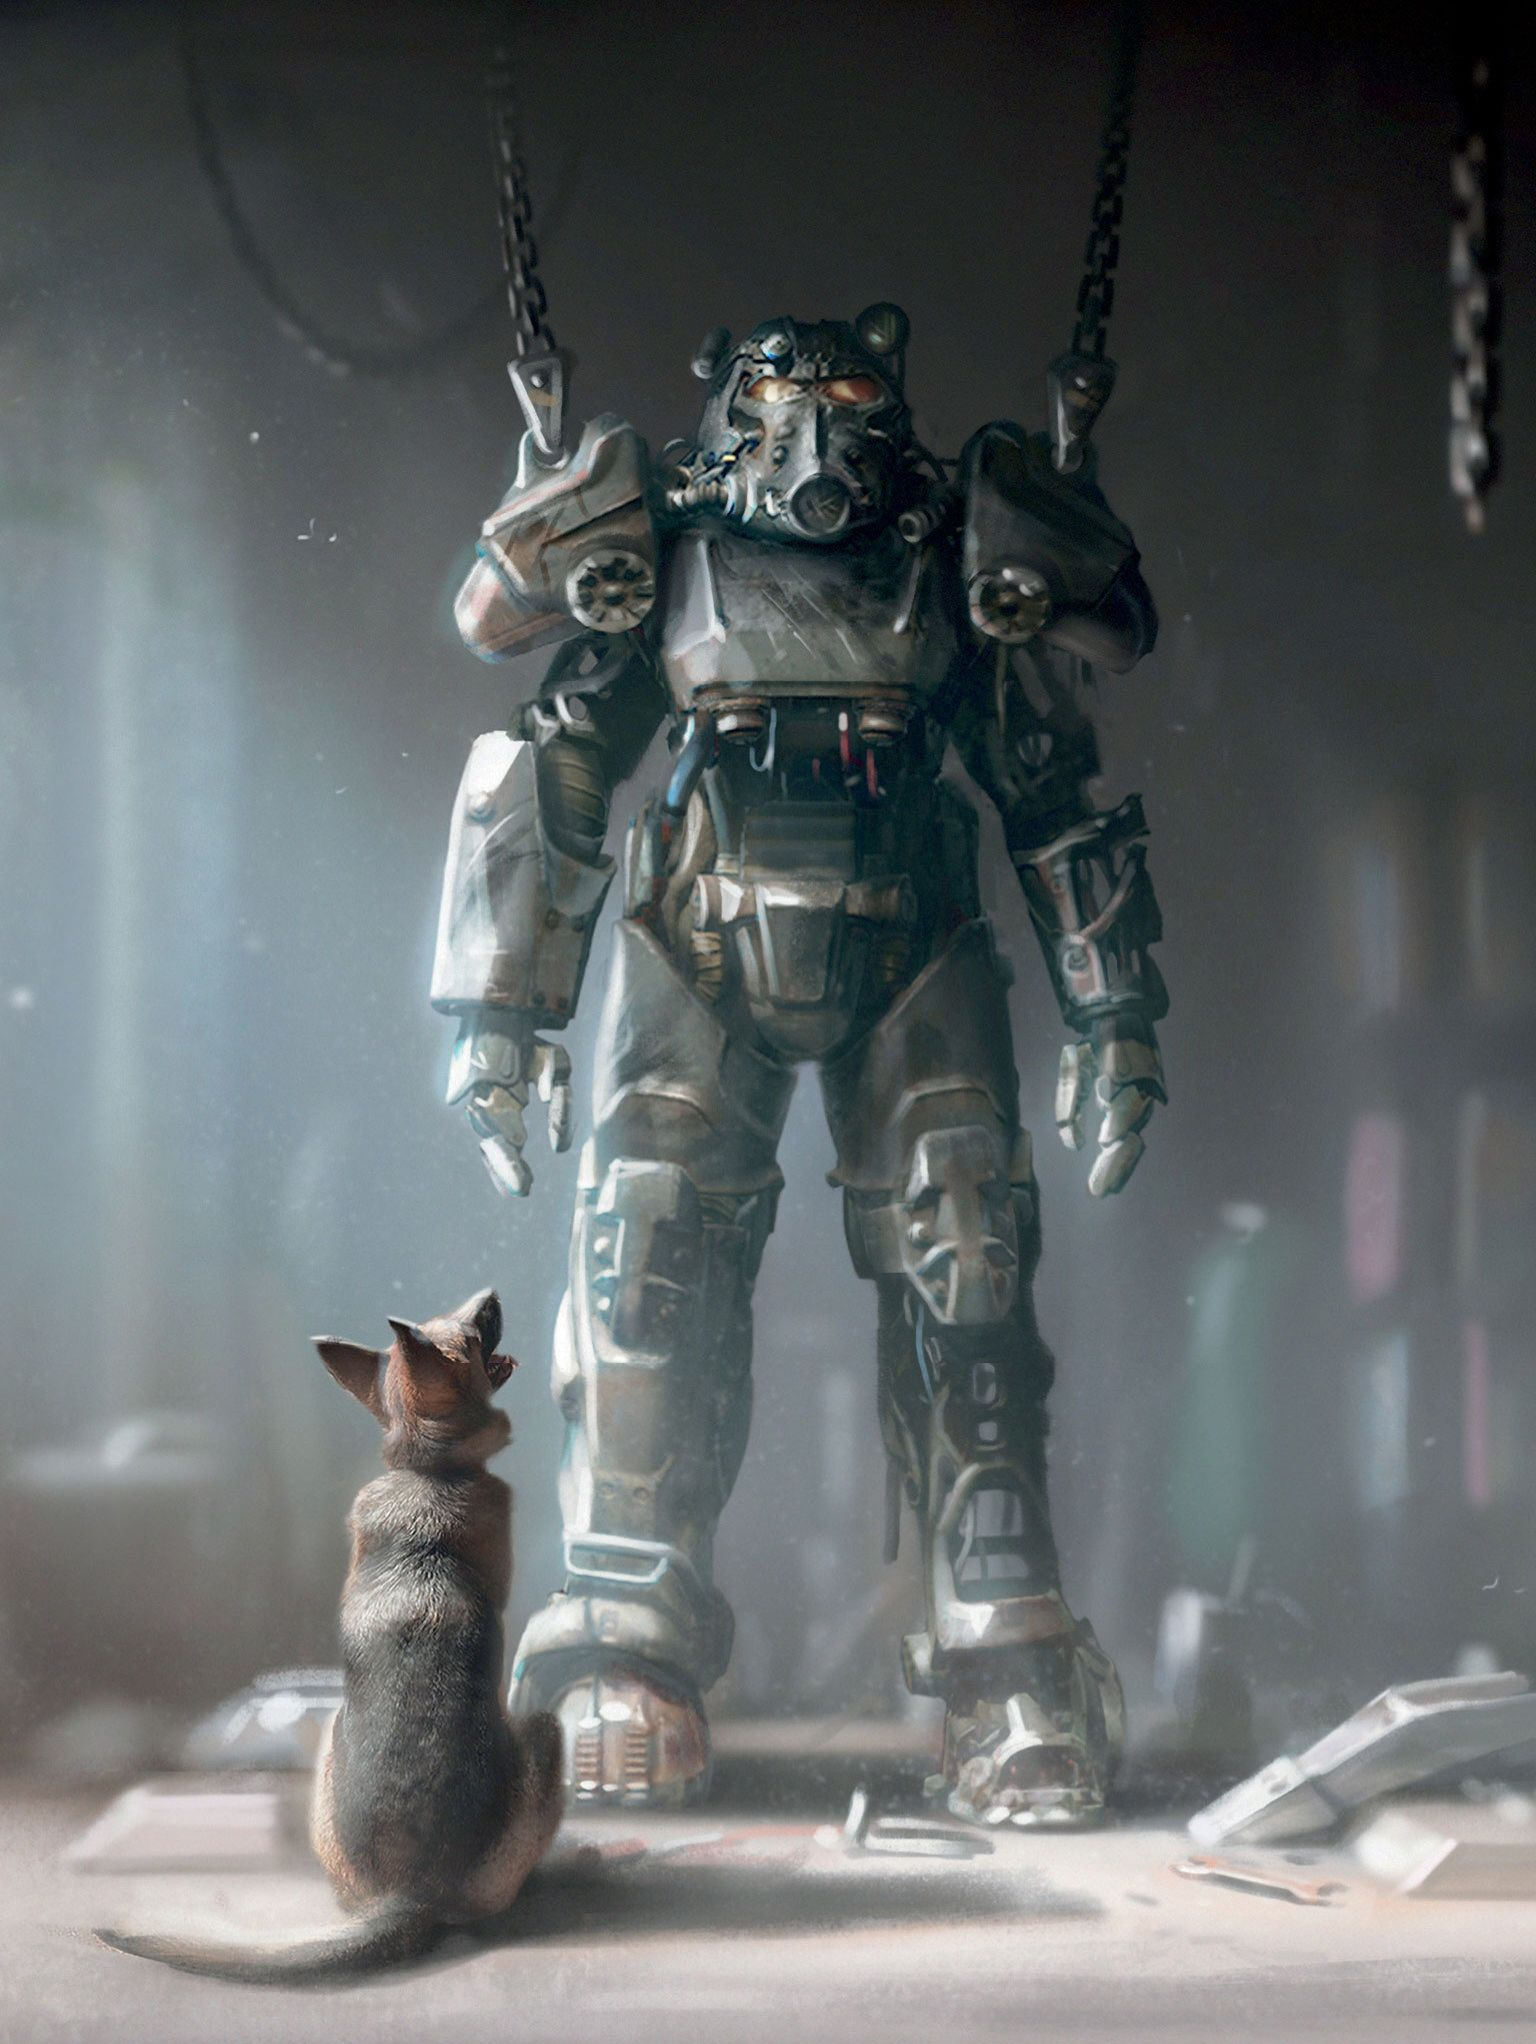 Fallout 4 Concept Dogmeat Power Armor Fallout Concept Art